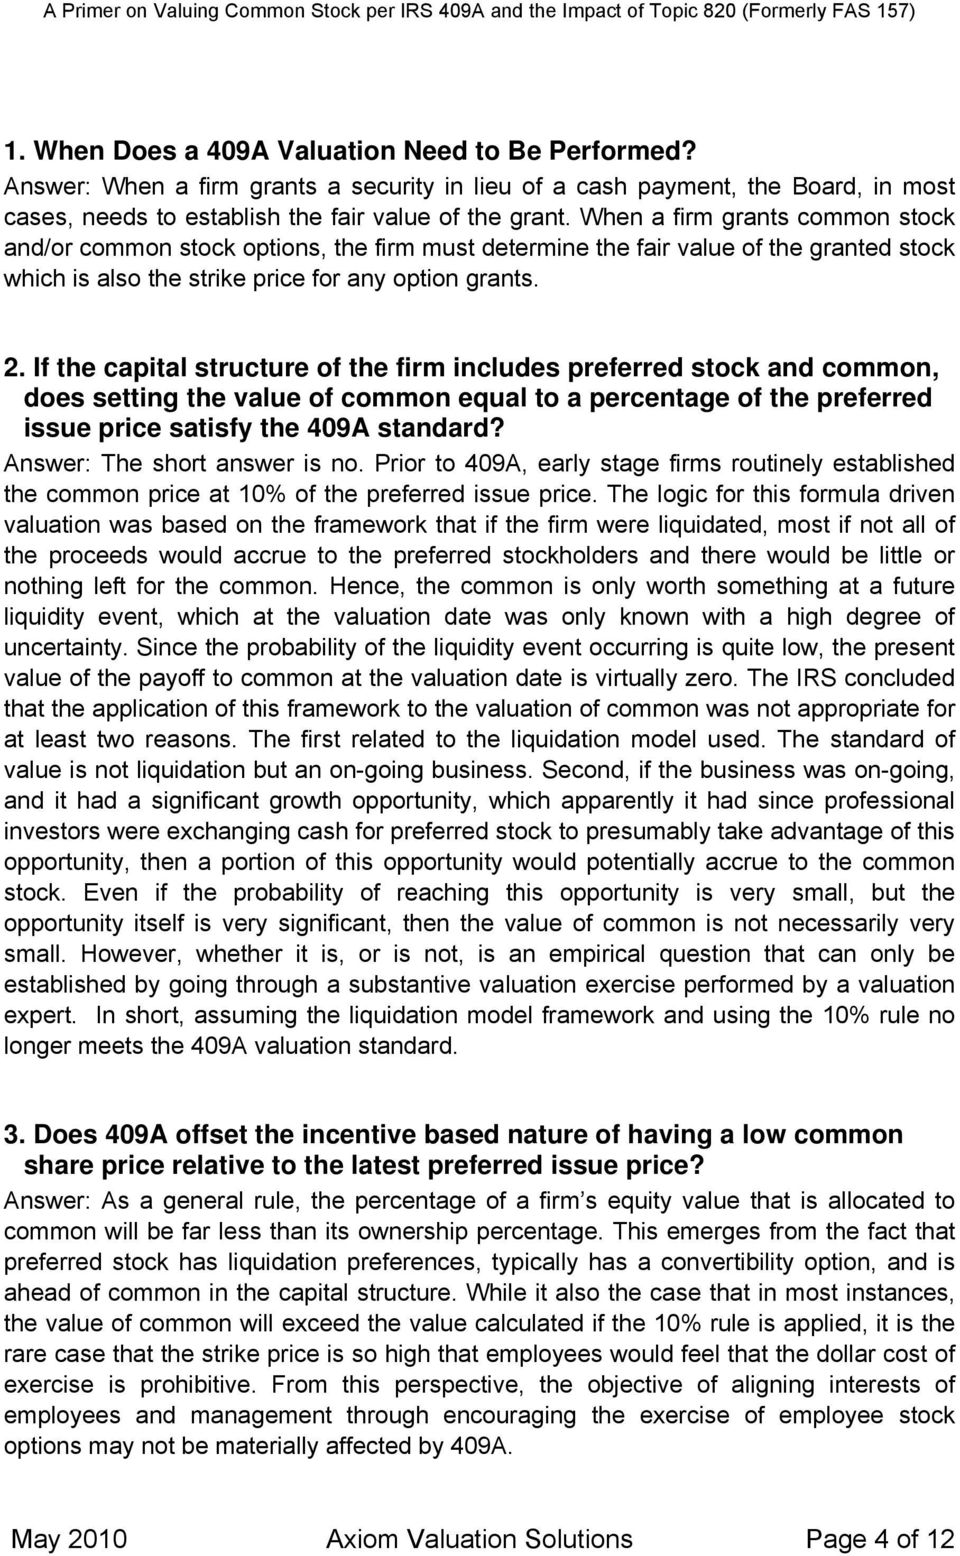 If the capital structure of the firm includes preferred stock and common, does setting the value of common equal to a percentage of the preferred issue price satisfy the 409A standard?